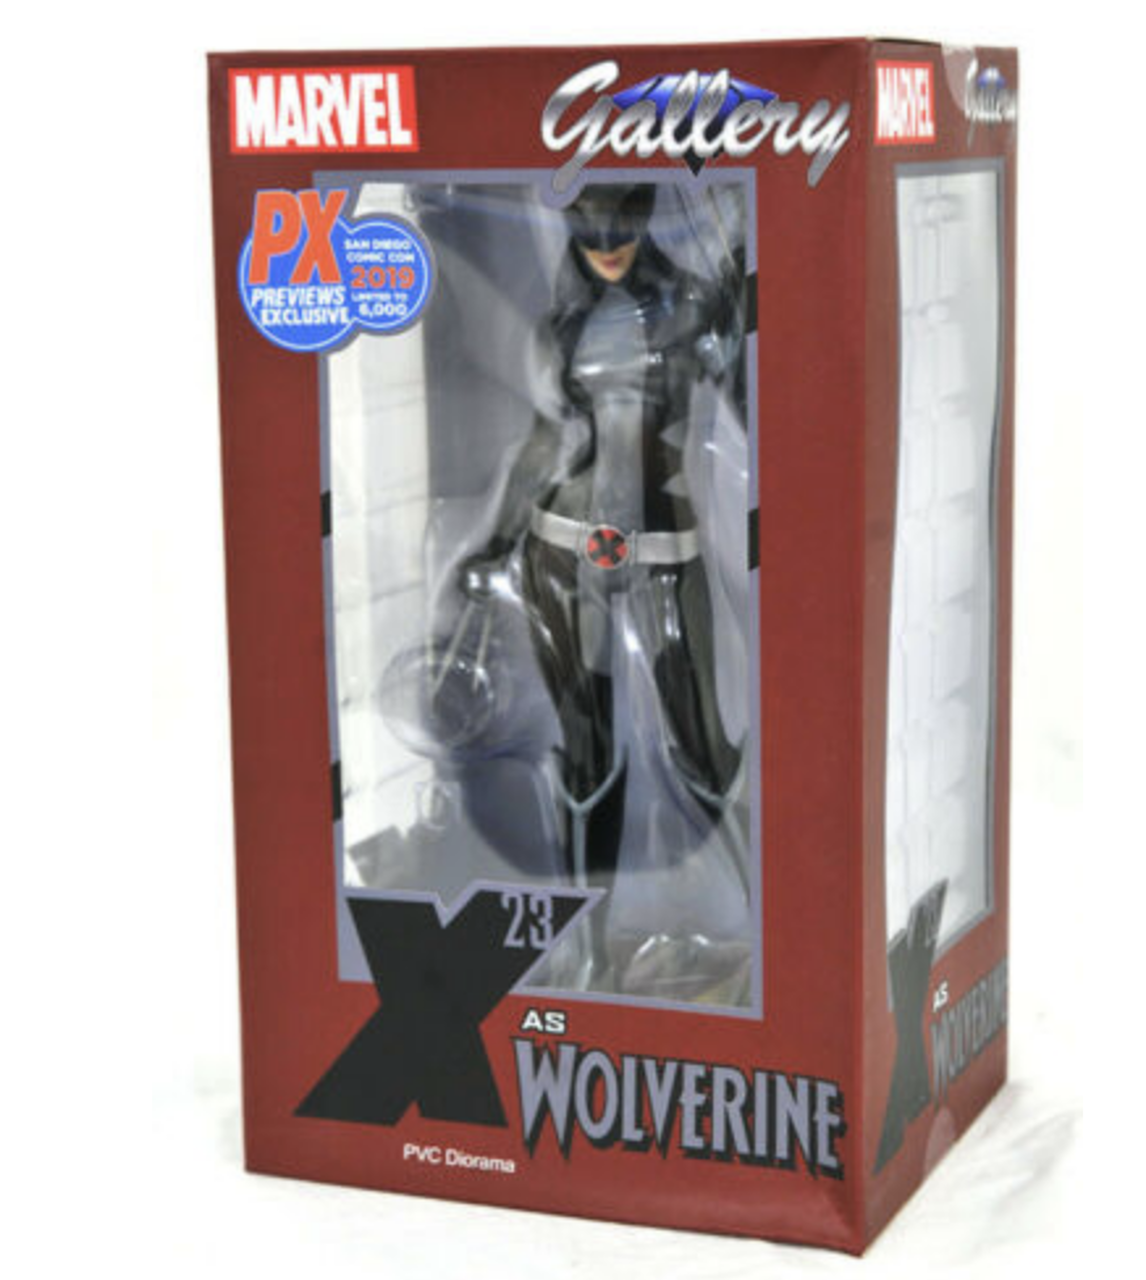 SAN DIEGO COMIC CON 2019 MARVEL GALLERY X-FORCE X-23 PVC STATUE